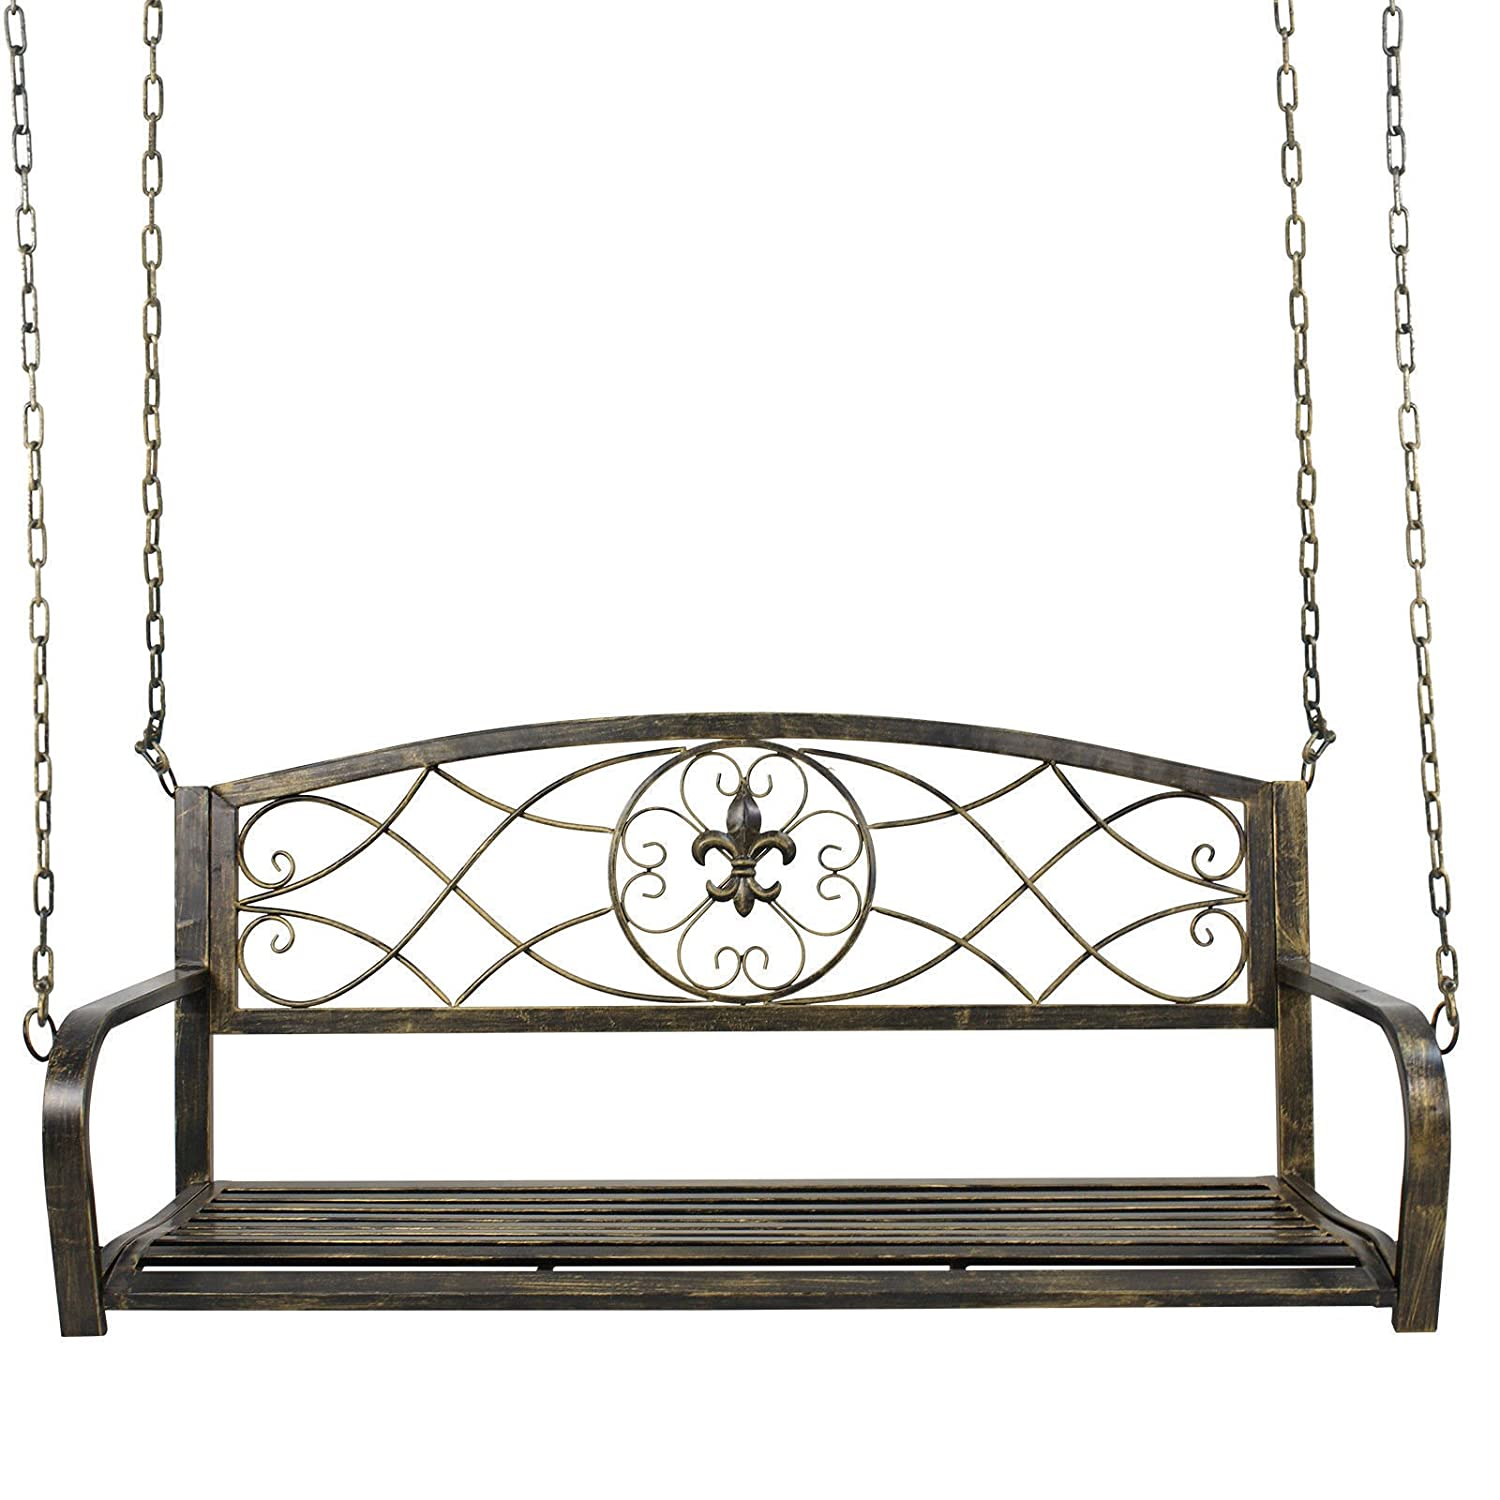 Outdoor Hanging Hammock Swing Bench Metal Fleur-De-Lis Patio Porch Furniture